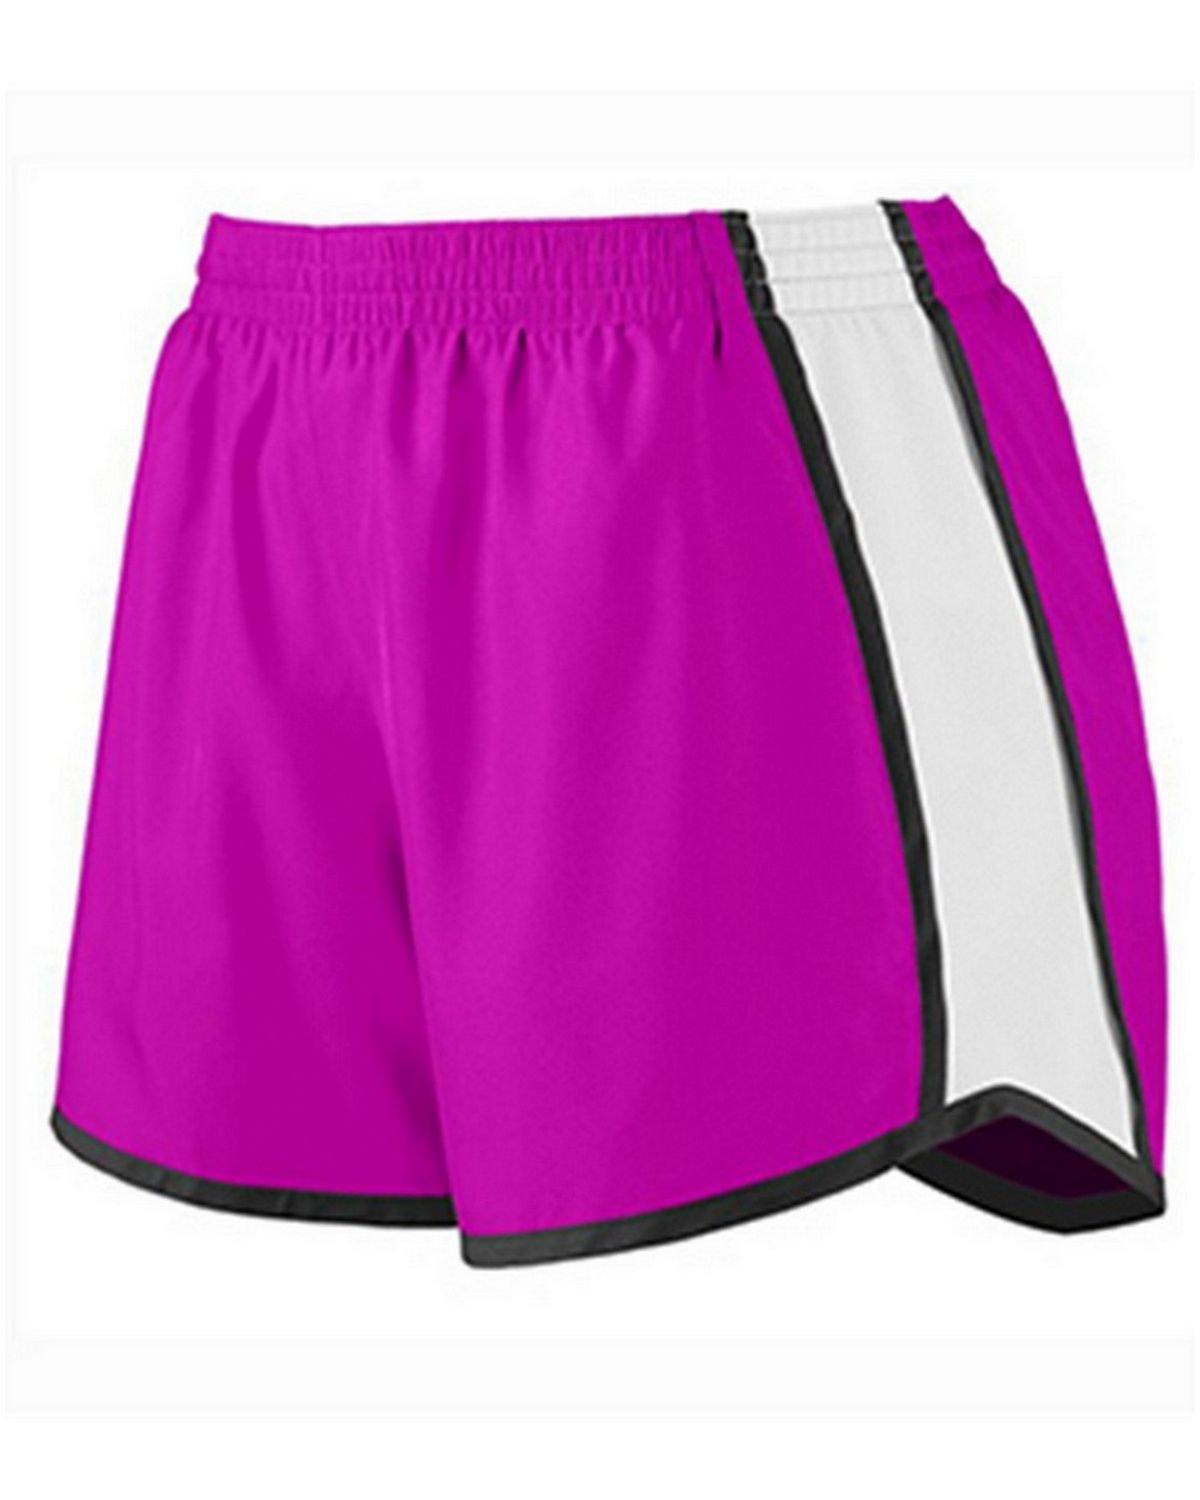 Augusta Sportswear 1265A Ladies Junior Fit Short - Power Pink/White/Black - 2X 1265A